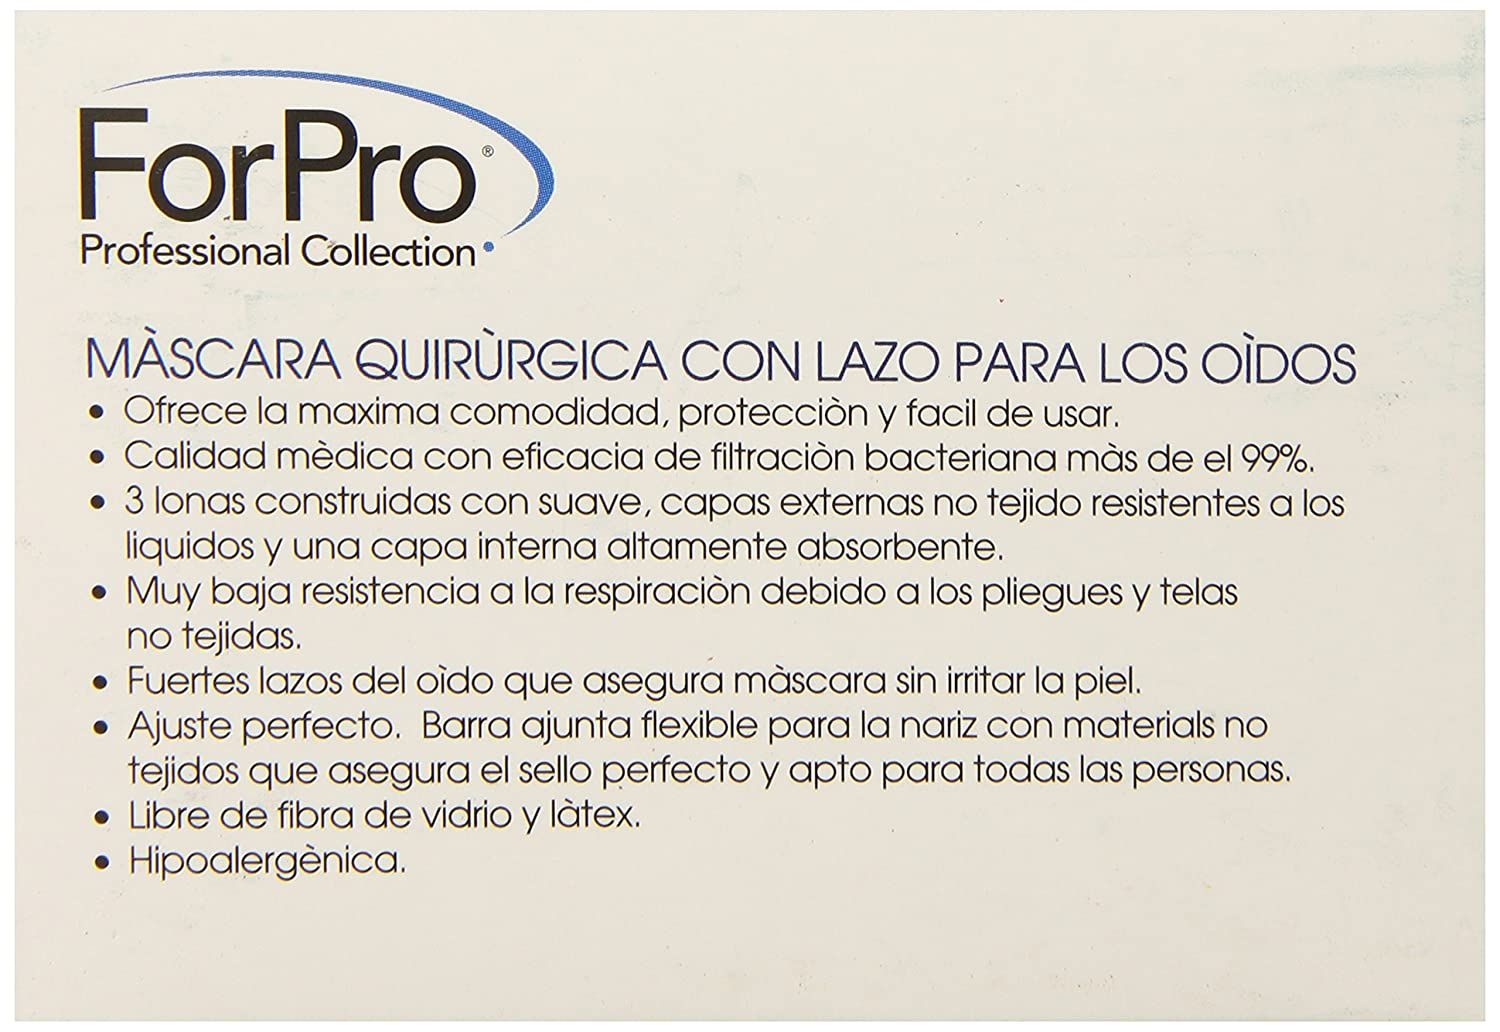 Amazon.com: For Pro 3-Ply Surgical Ear Loop Mask, 50 Count: Health & Personal Care